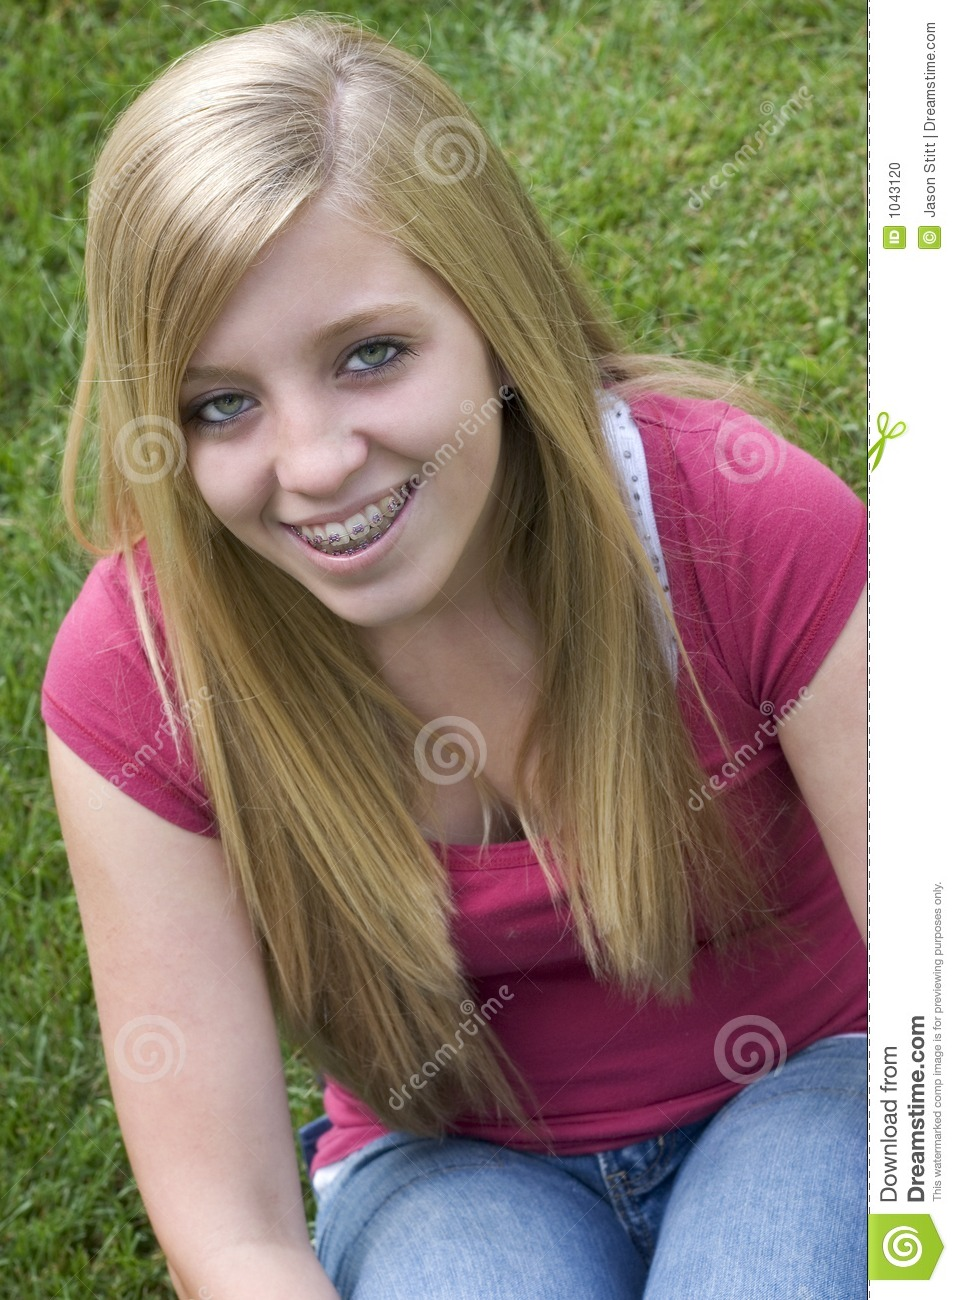 Blonde Teenager Stock Photo. Image Of Happiness, Portrait